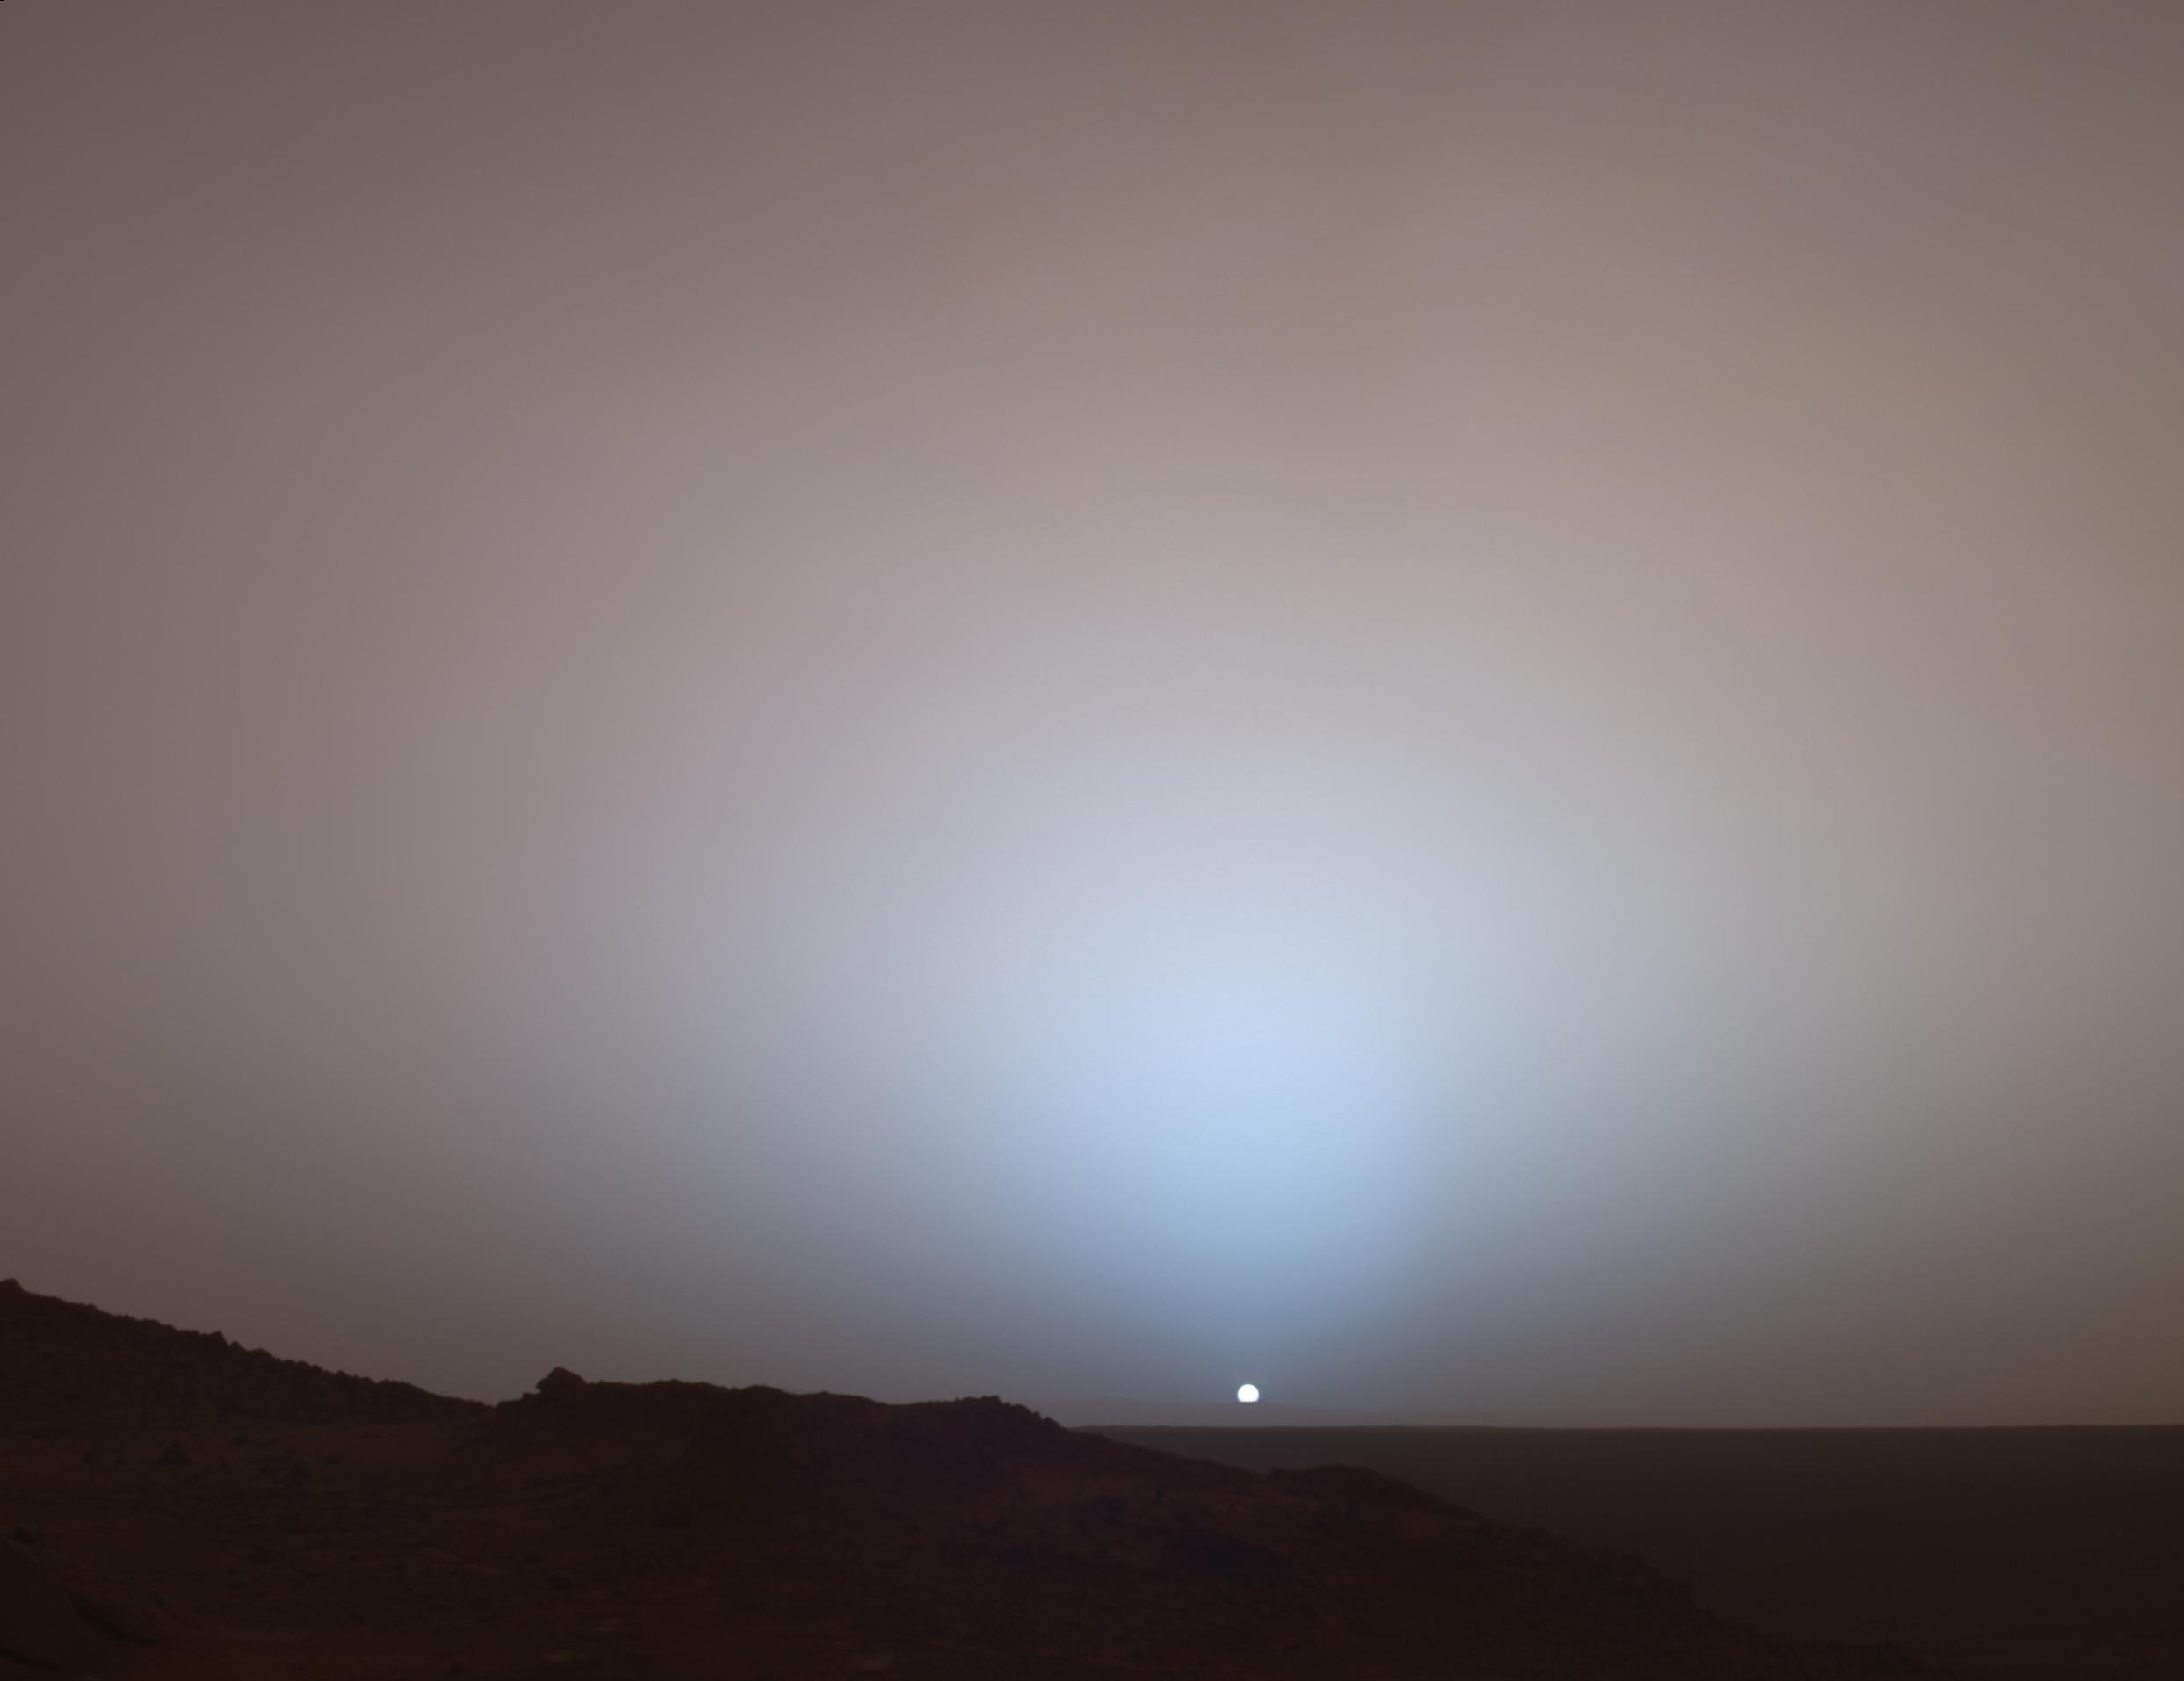 martiansunset_spirit_2486